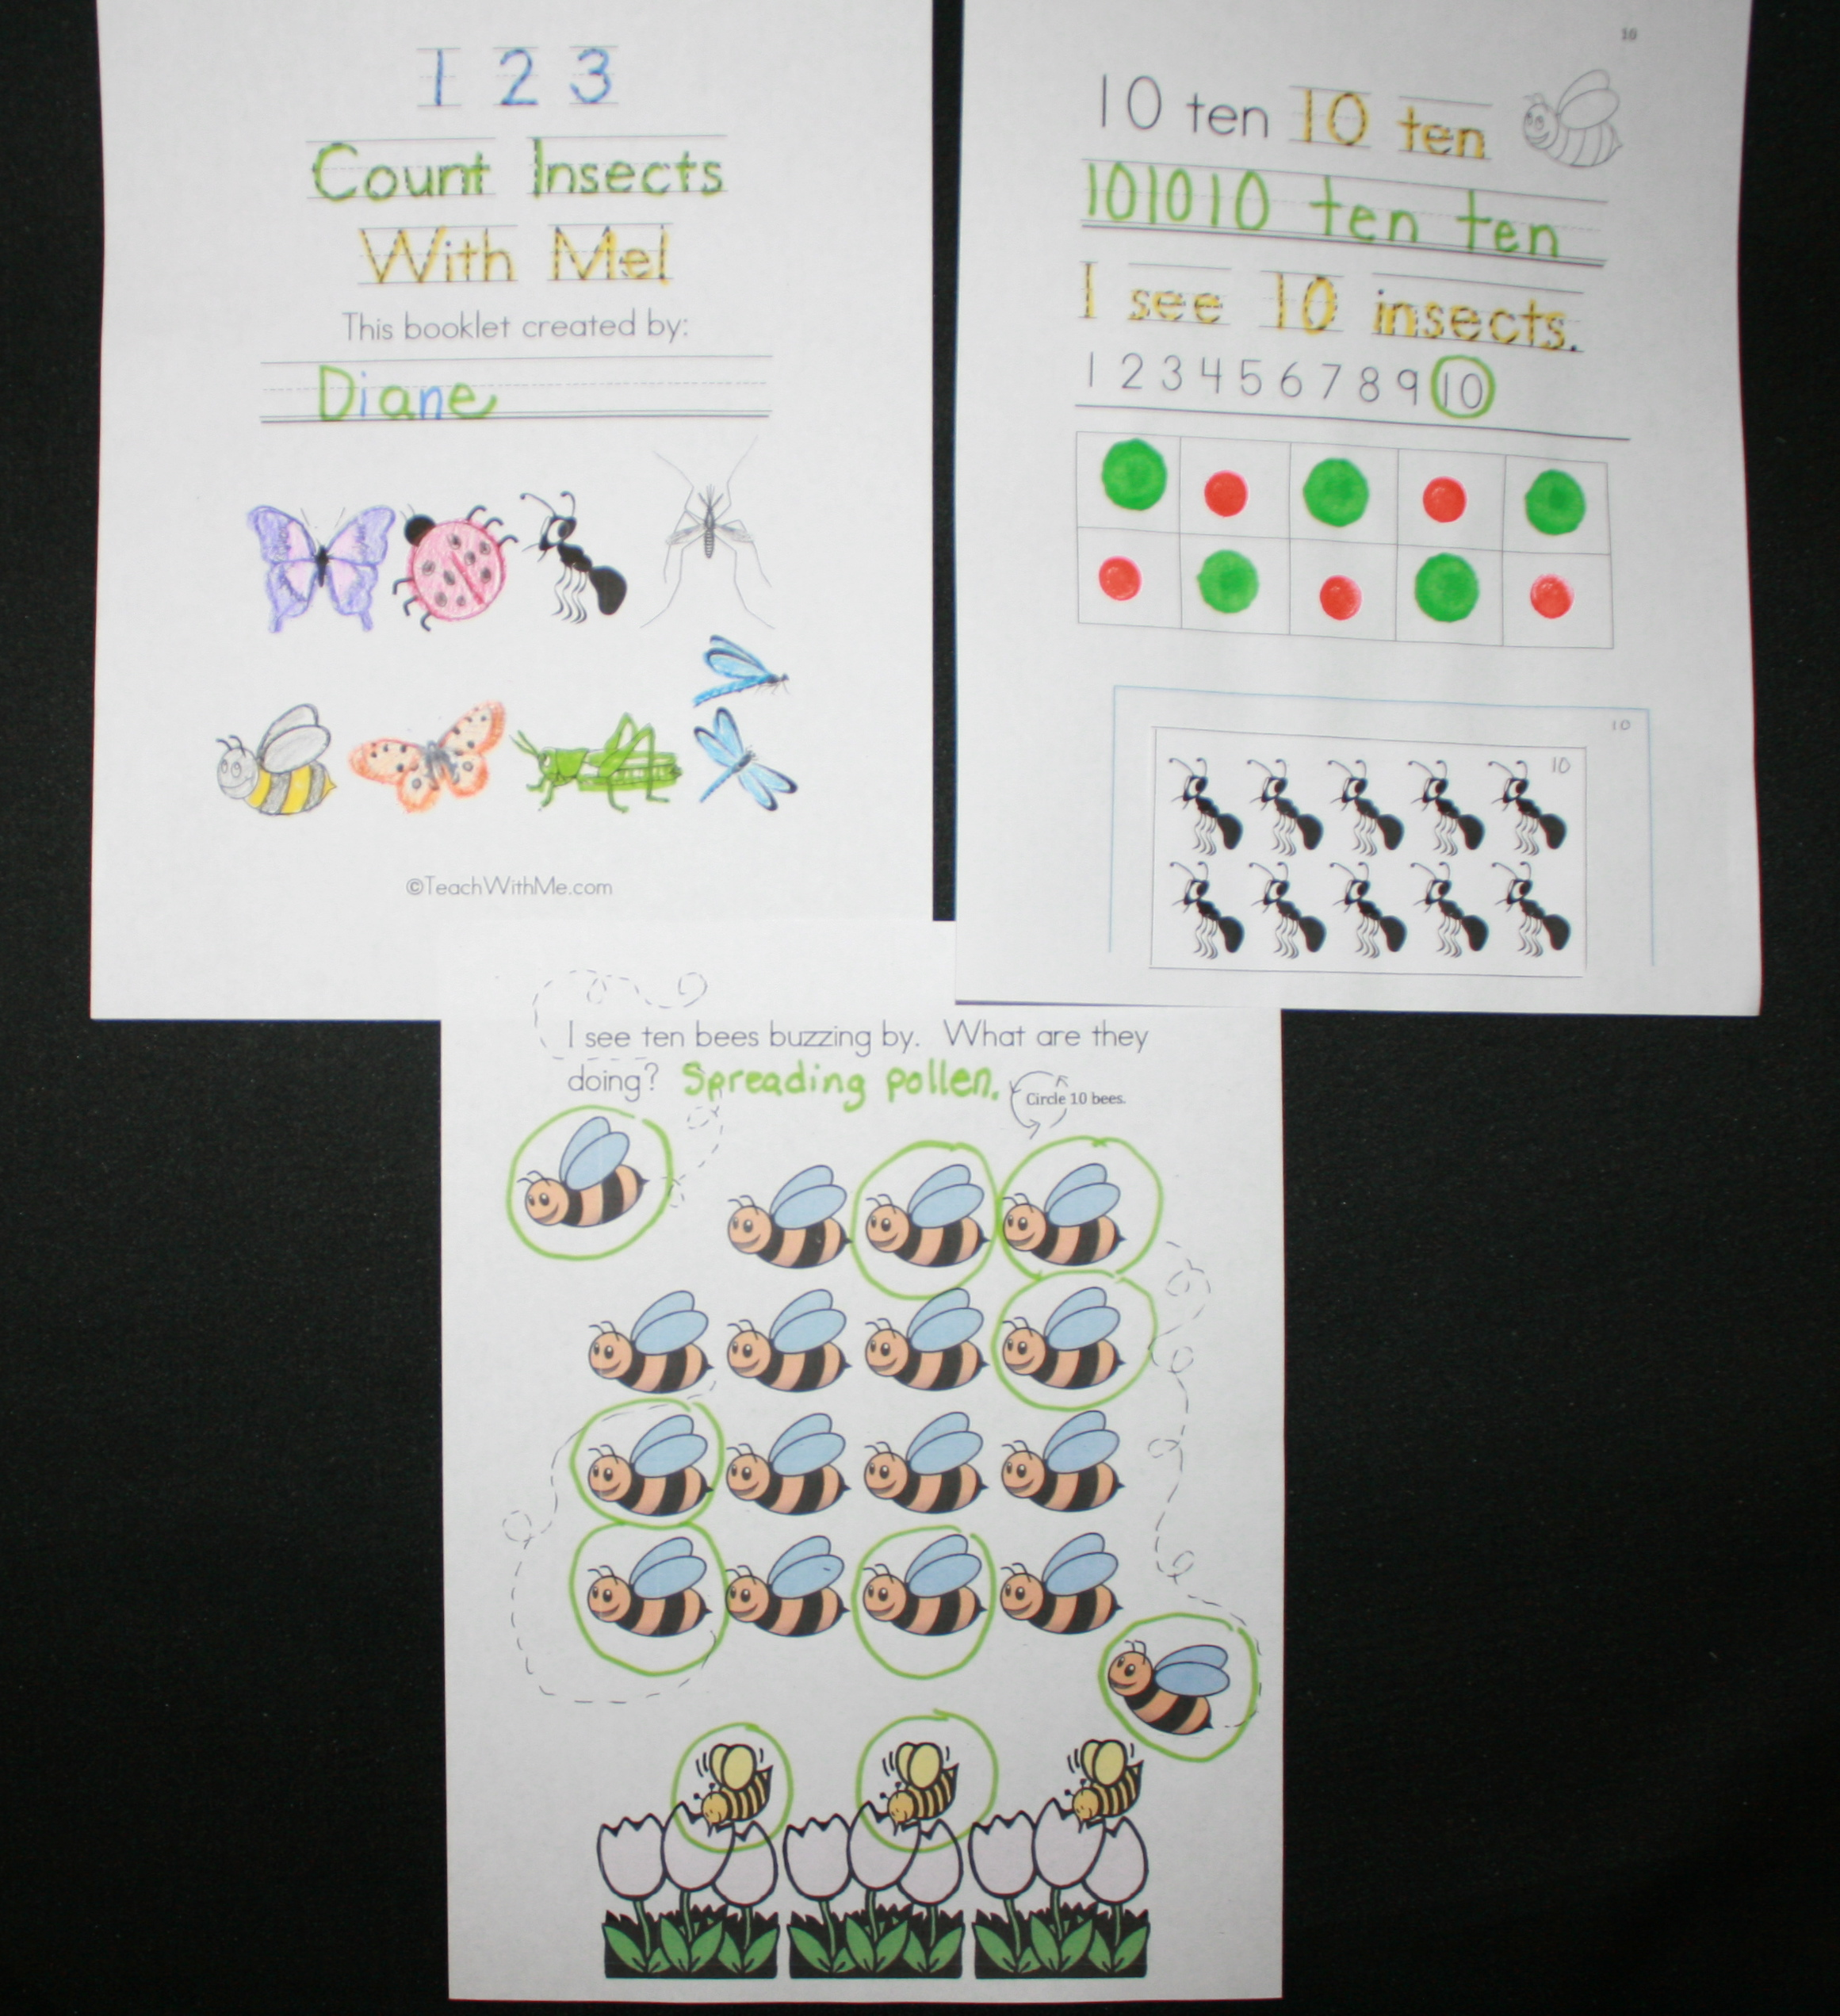 counting booklet, counting activities, counting flowers, flower activities, flower ideas, flower lessons, counting frogs, frog activites, frog lessons, math centers, math booklets, frog ideas, flower ideas, bug lessons, insect lessons, bug ideas, insect ideas, bug booklet, insect booklet, counting bugs, counting insects, math centers, daily 5 activities for may, daily 5 activities for spring, writing activities for early elementary, math booklet,